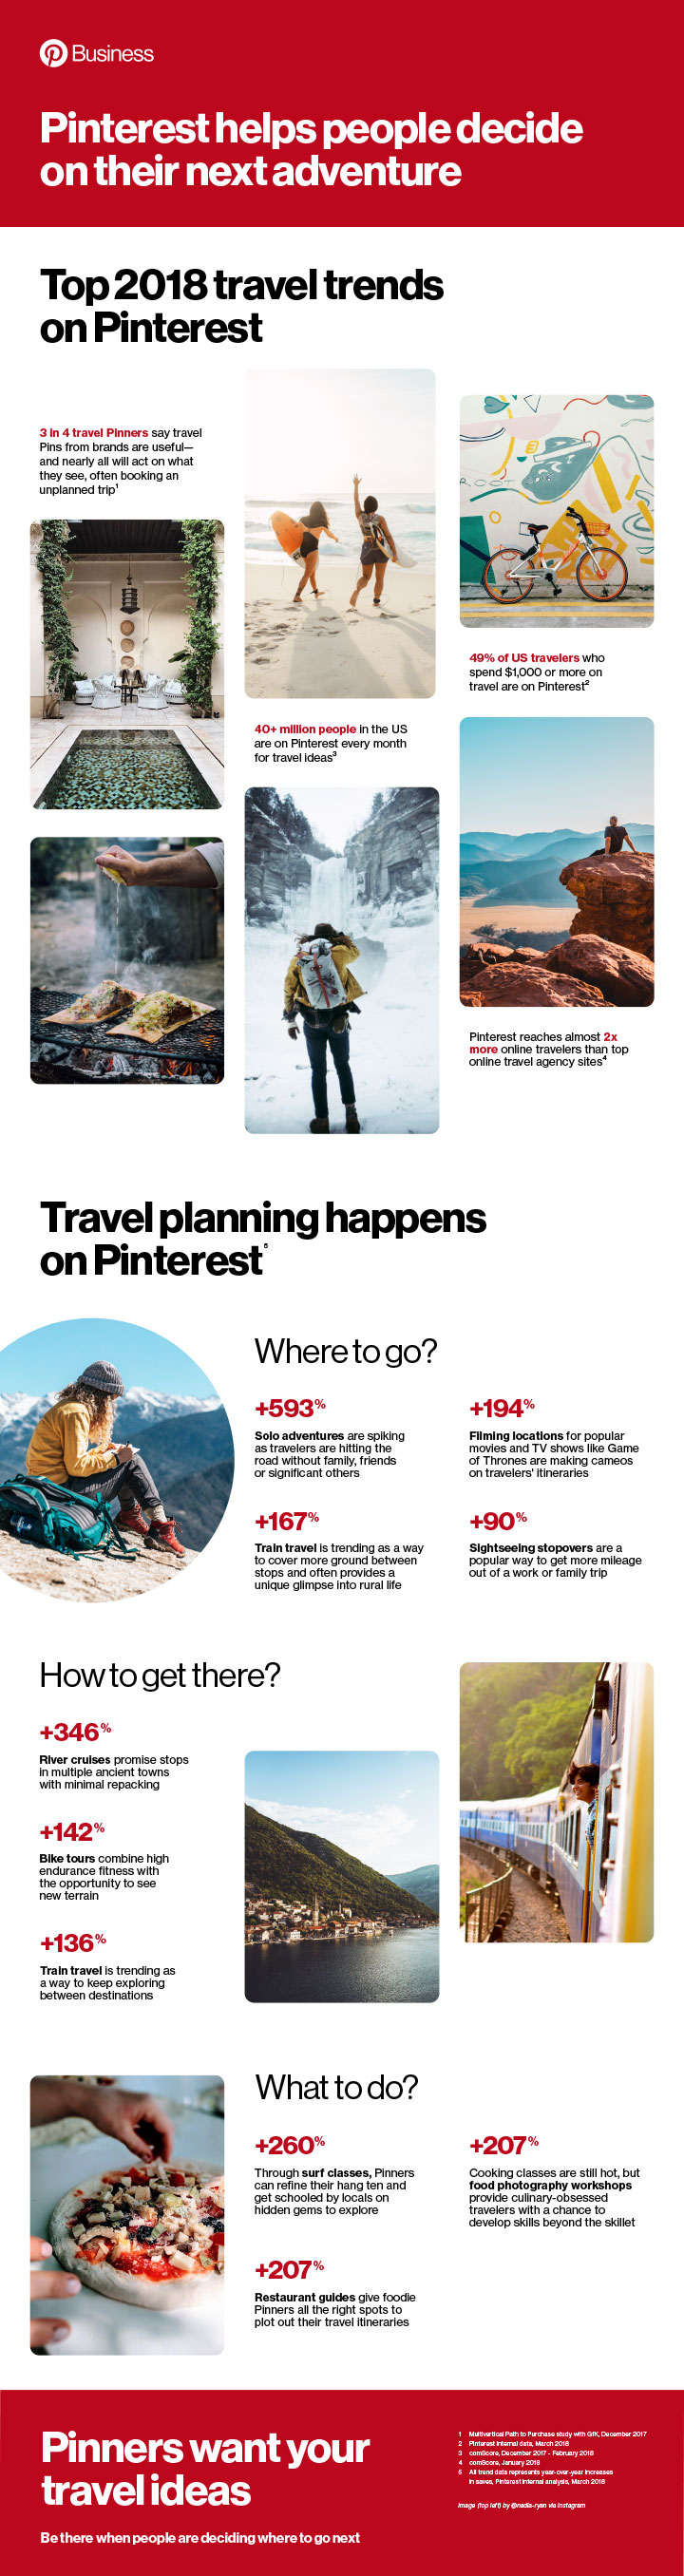 Wondering the Pinterest travel trends for 2018? Pinterest just revealed the results of their new study! Check out this infographic you should save for tips.